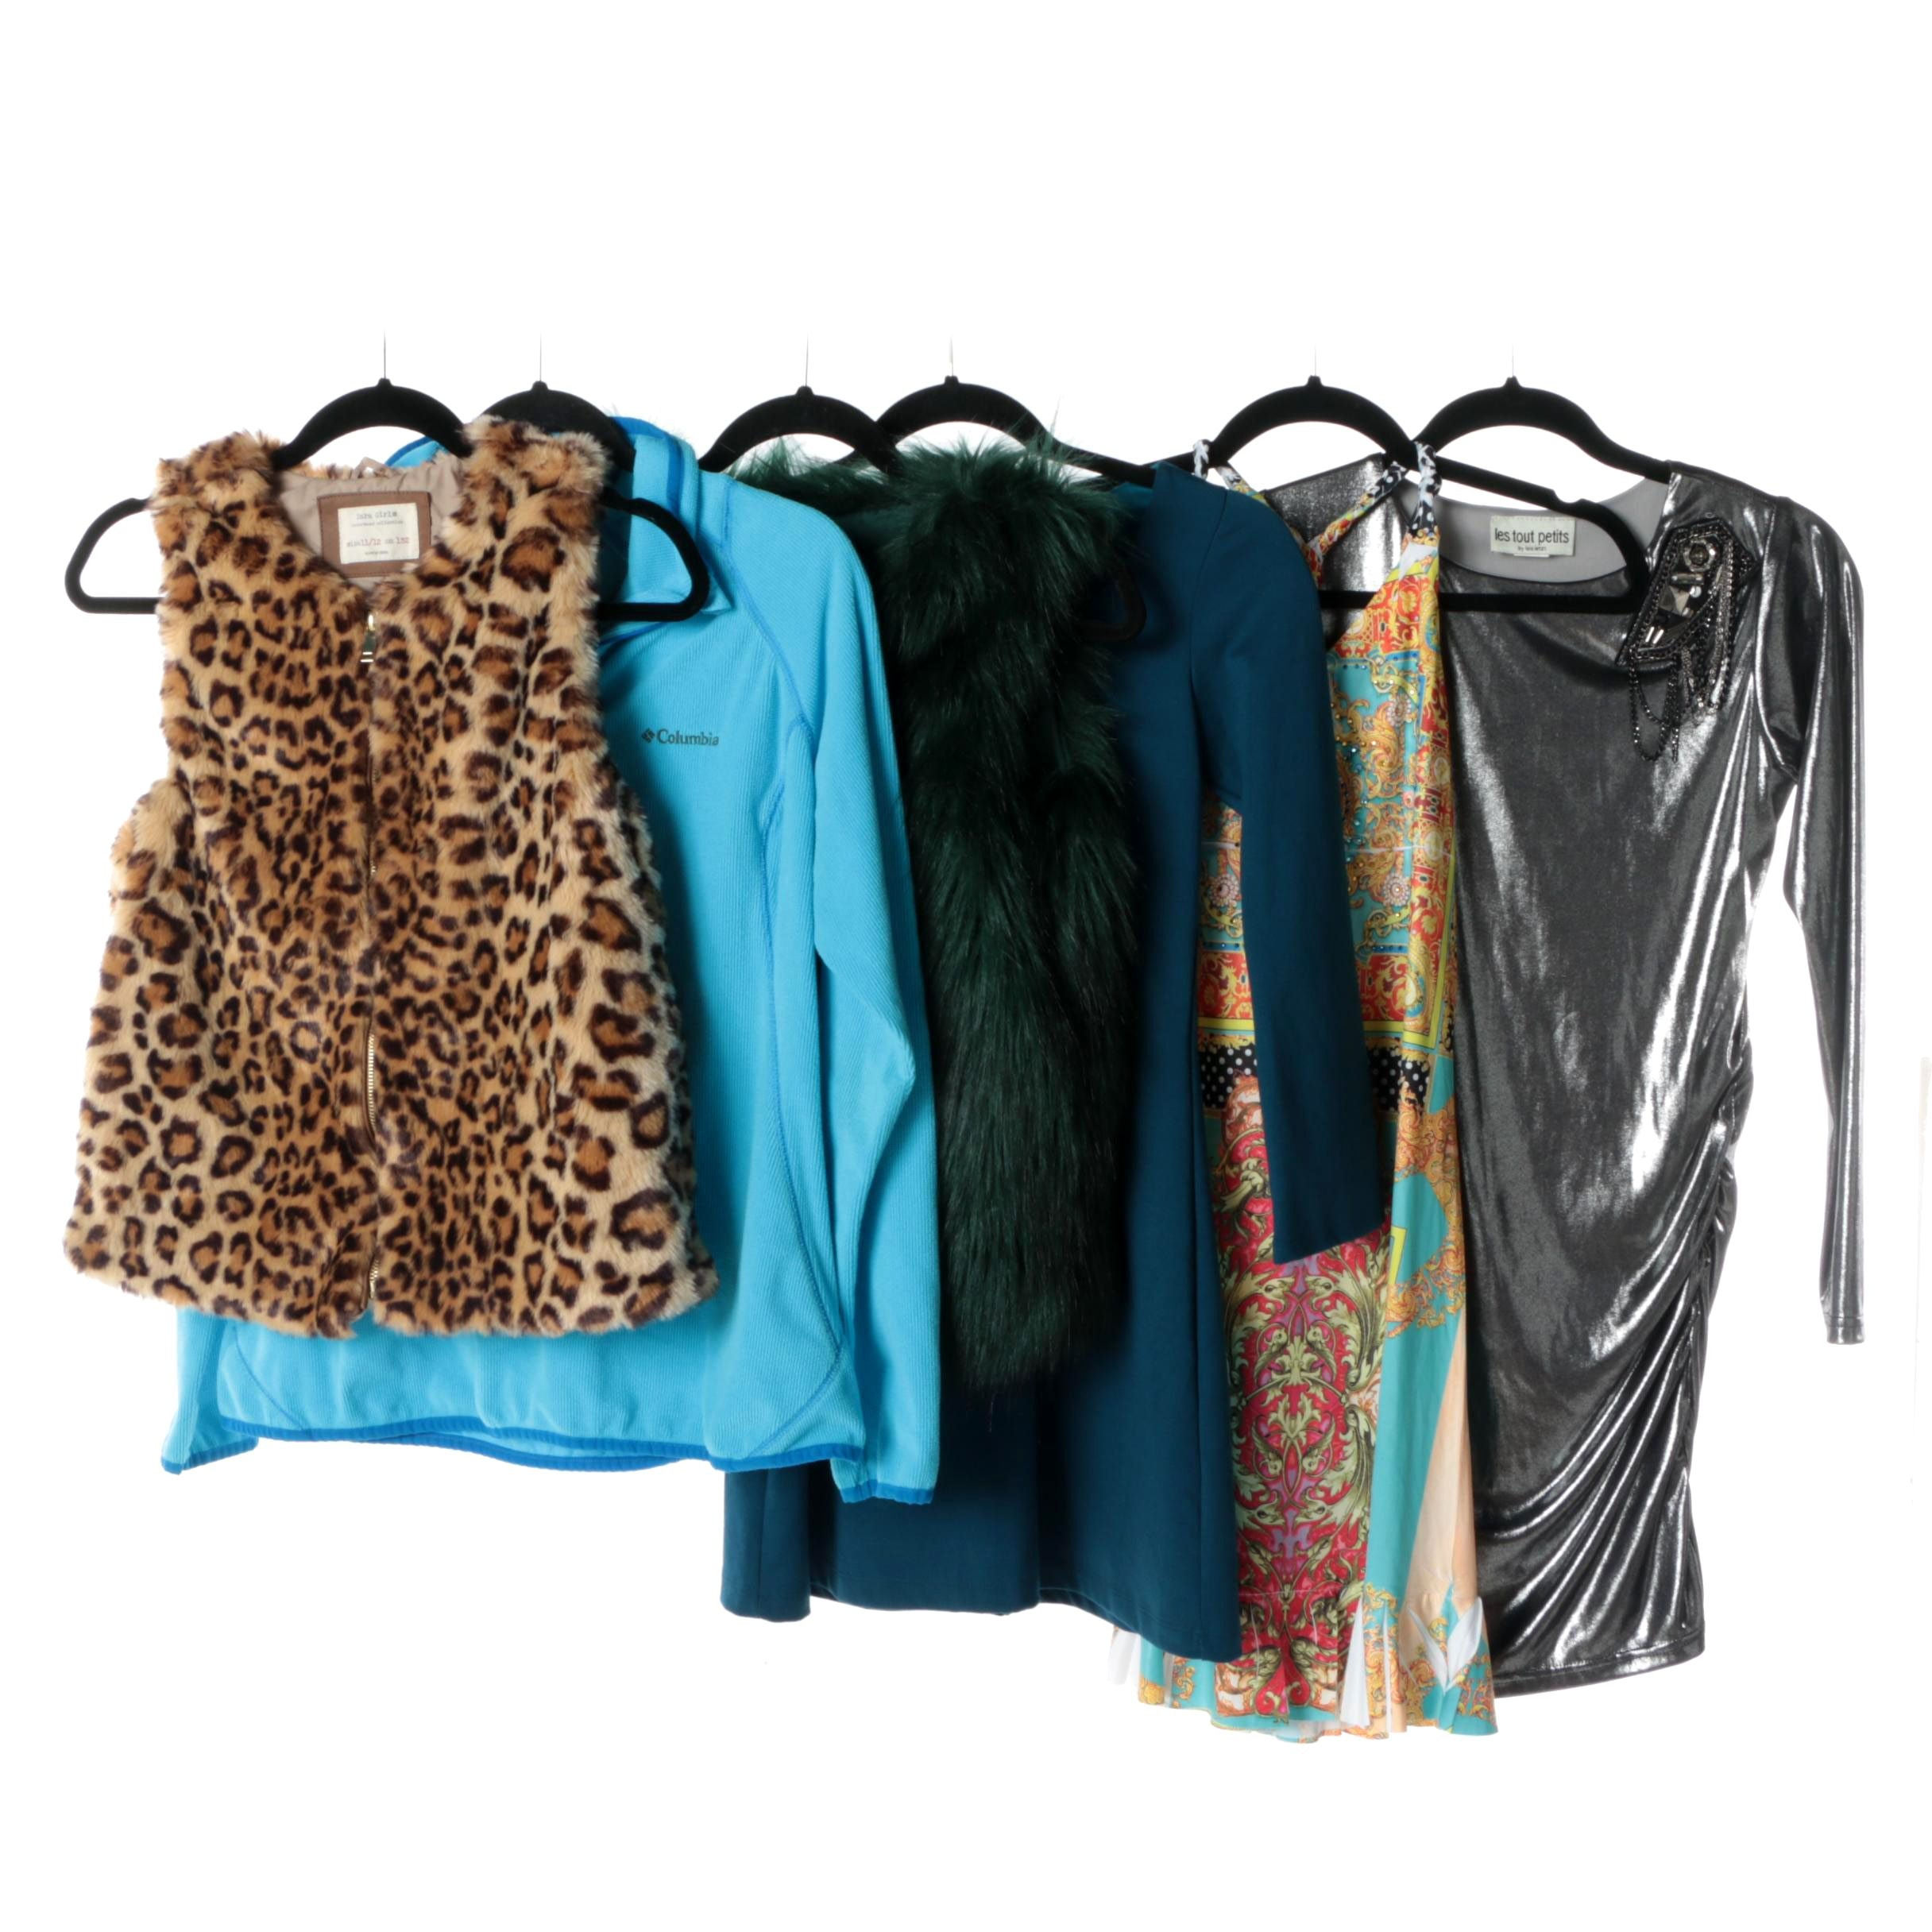 Girls' Outerwear and Dresses Including Zara Girls, Columbia and Sophie & Mia